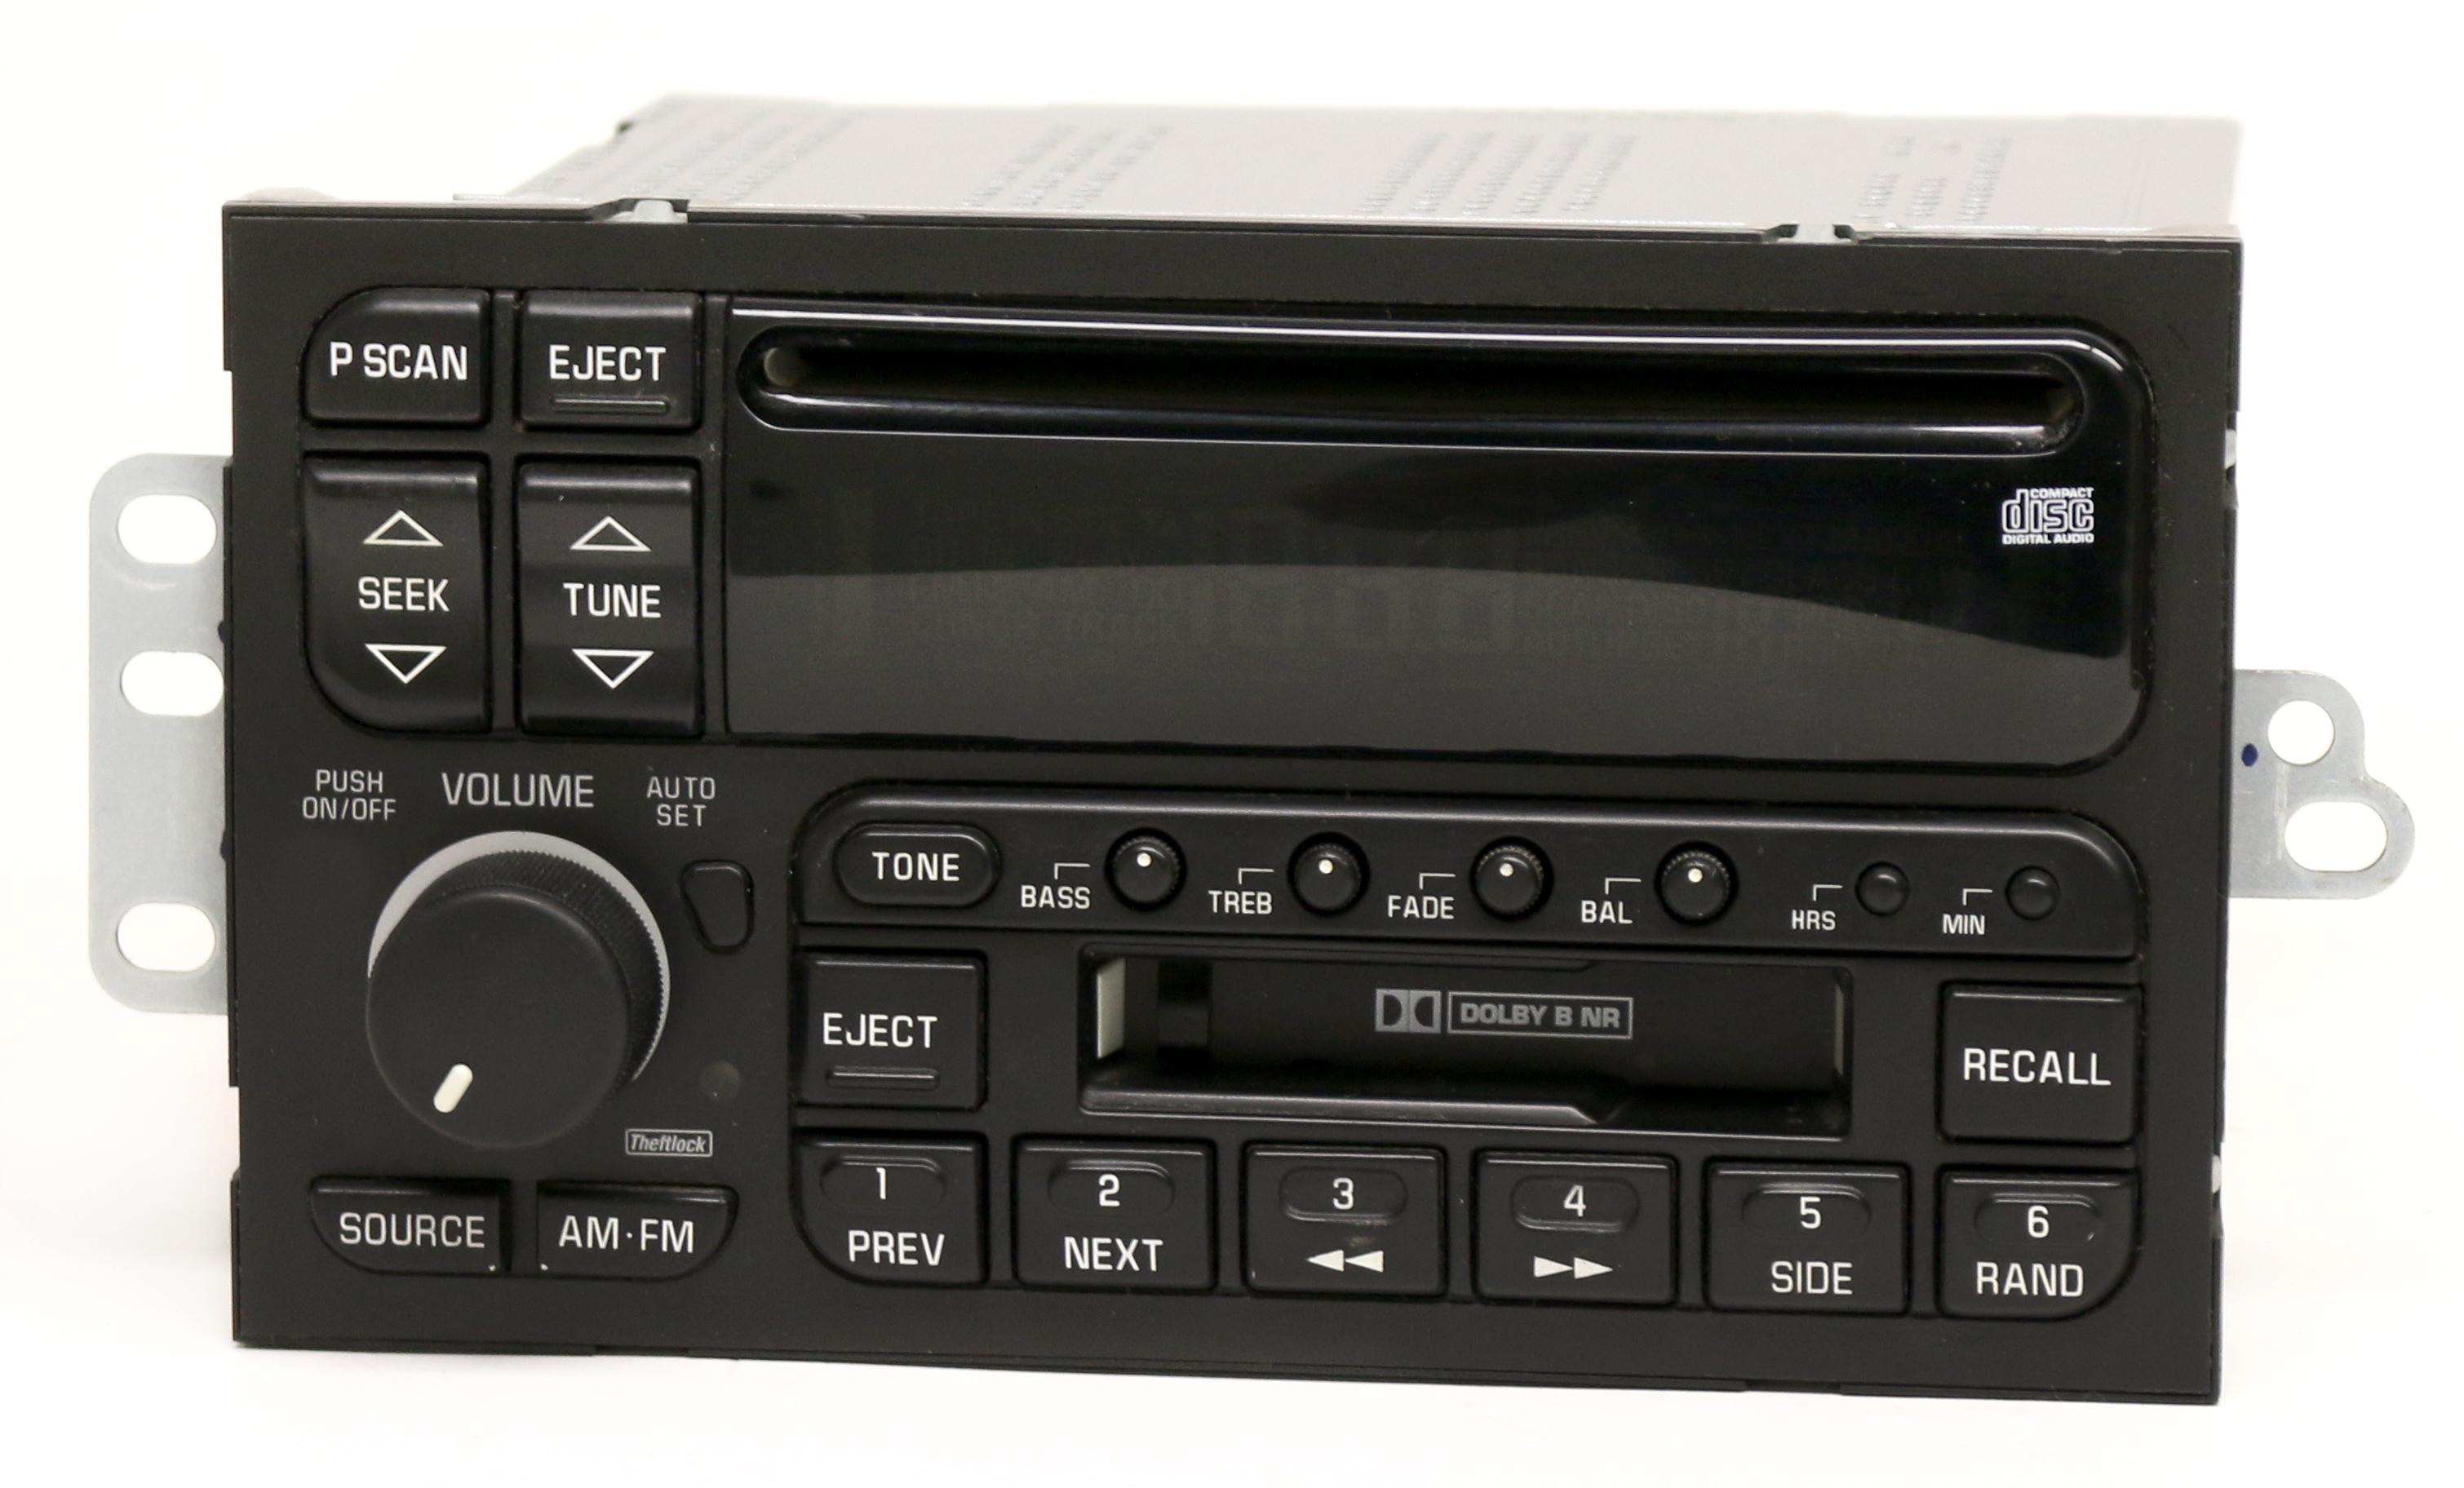 buick lesabre century regal 1996 2003 radio am fm cd cassette buick lesabre century regal 1996 2003 radio am fm cd cassette player pn 09373354 1 factory radio